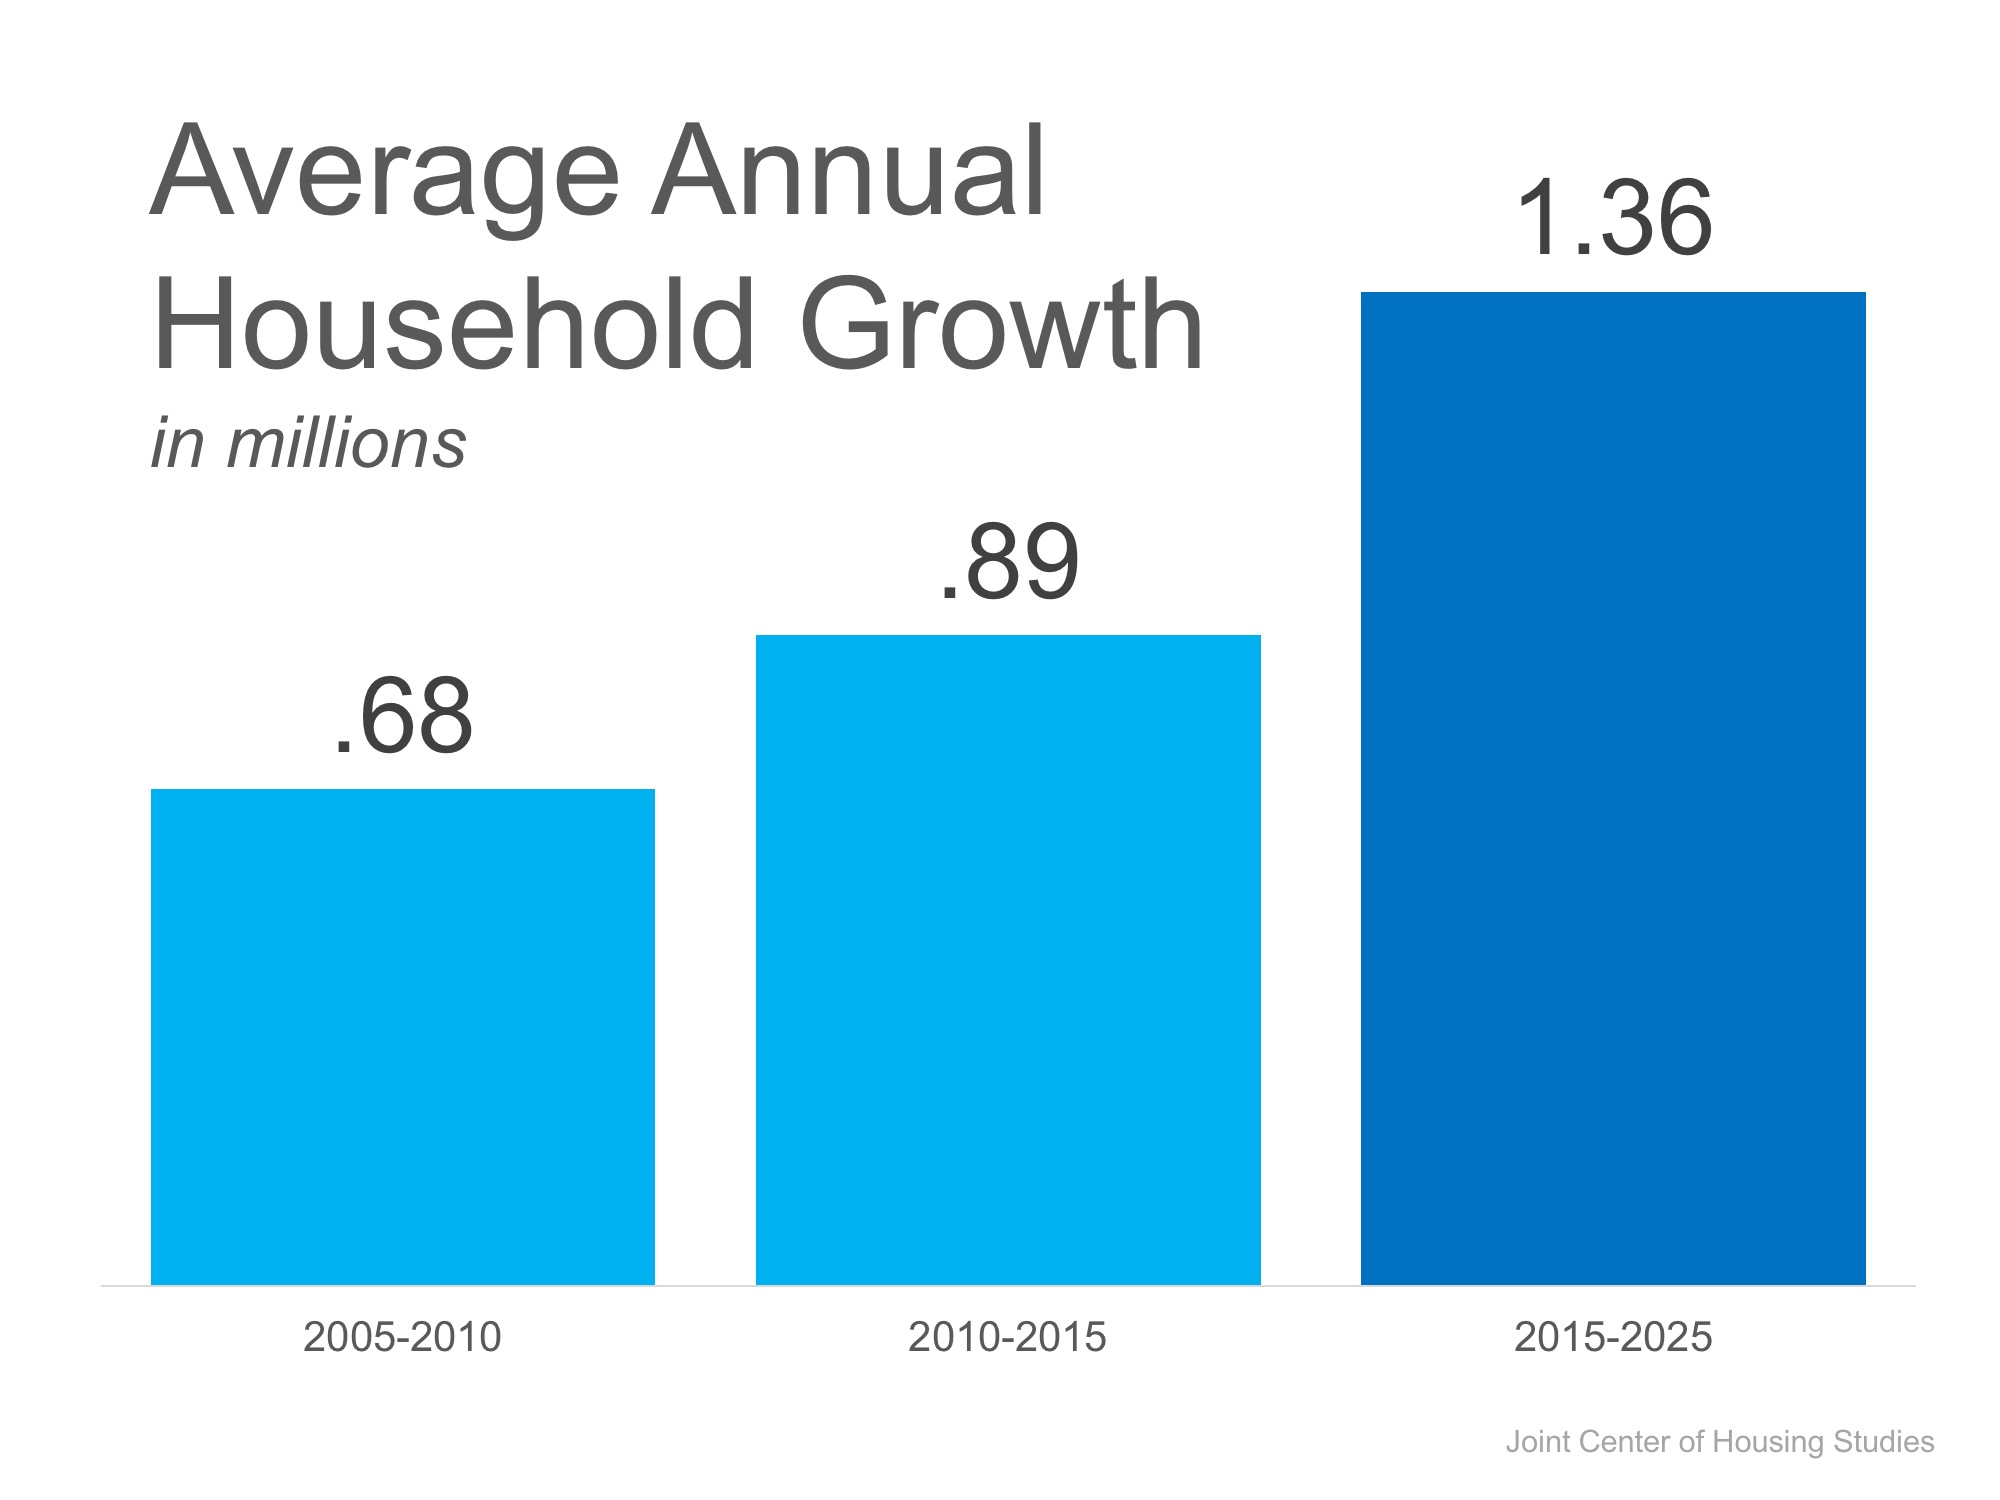 Average Annual Household Growth